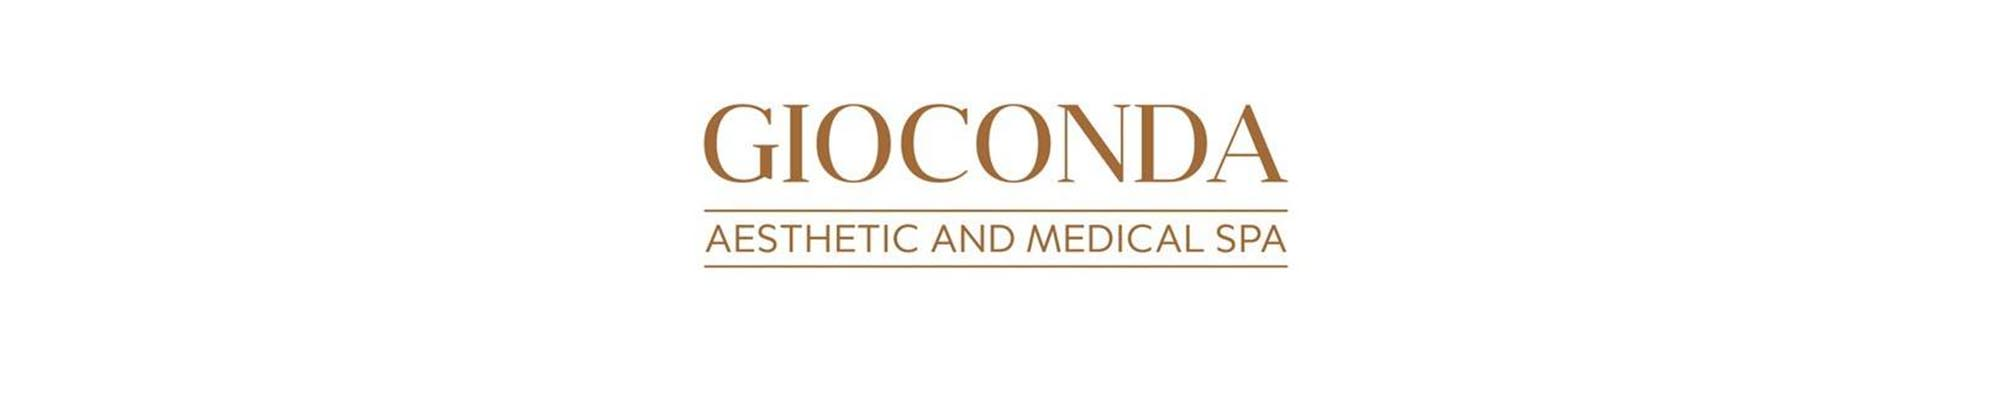 Gioconda Medical SPA